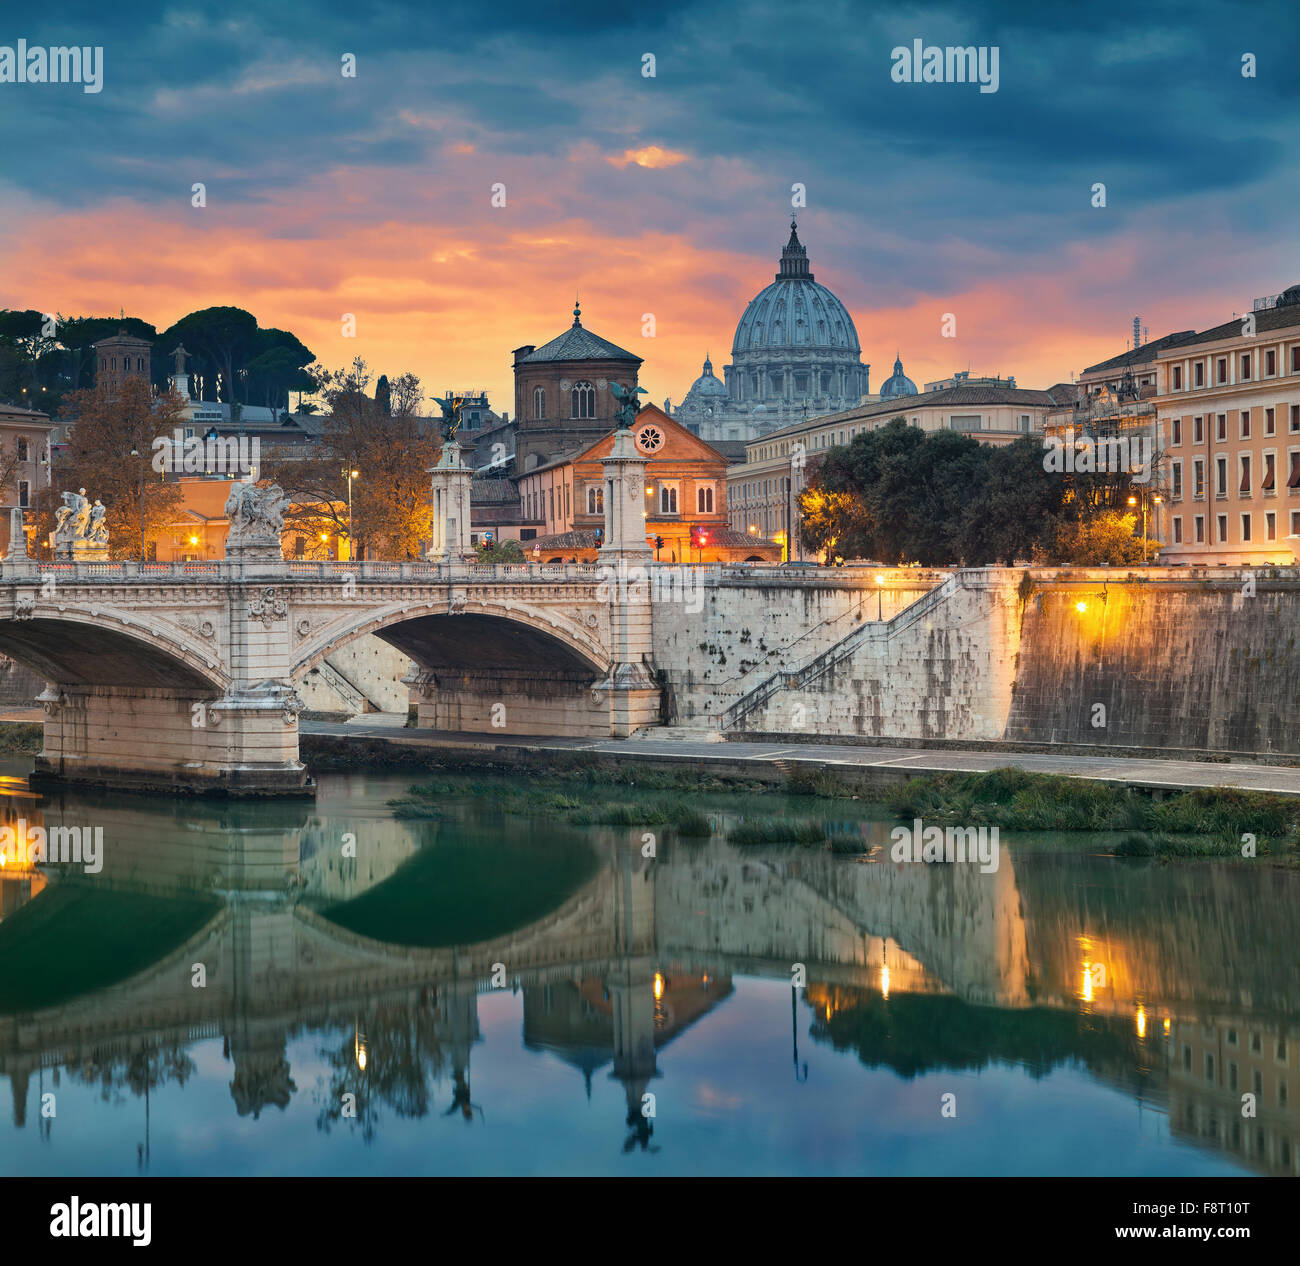 Rome. View of Vittorio Emanuele Bridge and the St. Peter's cathedral in Rome, Italy during sunset. - Stock Image